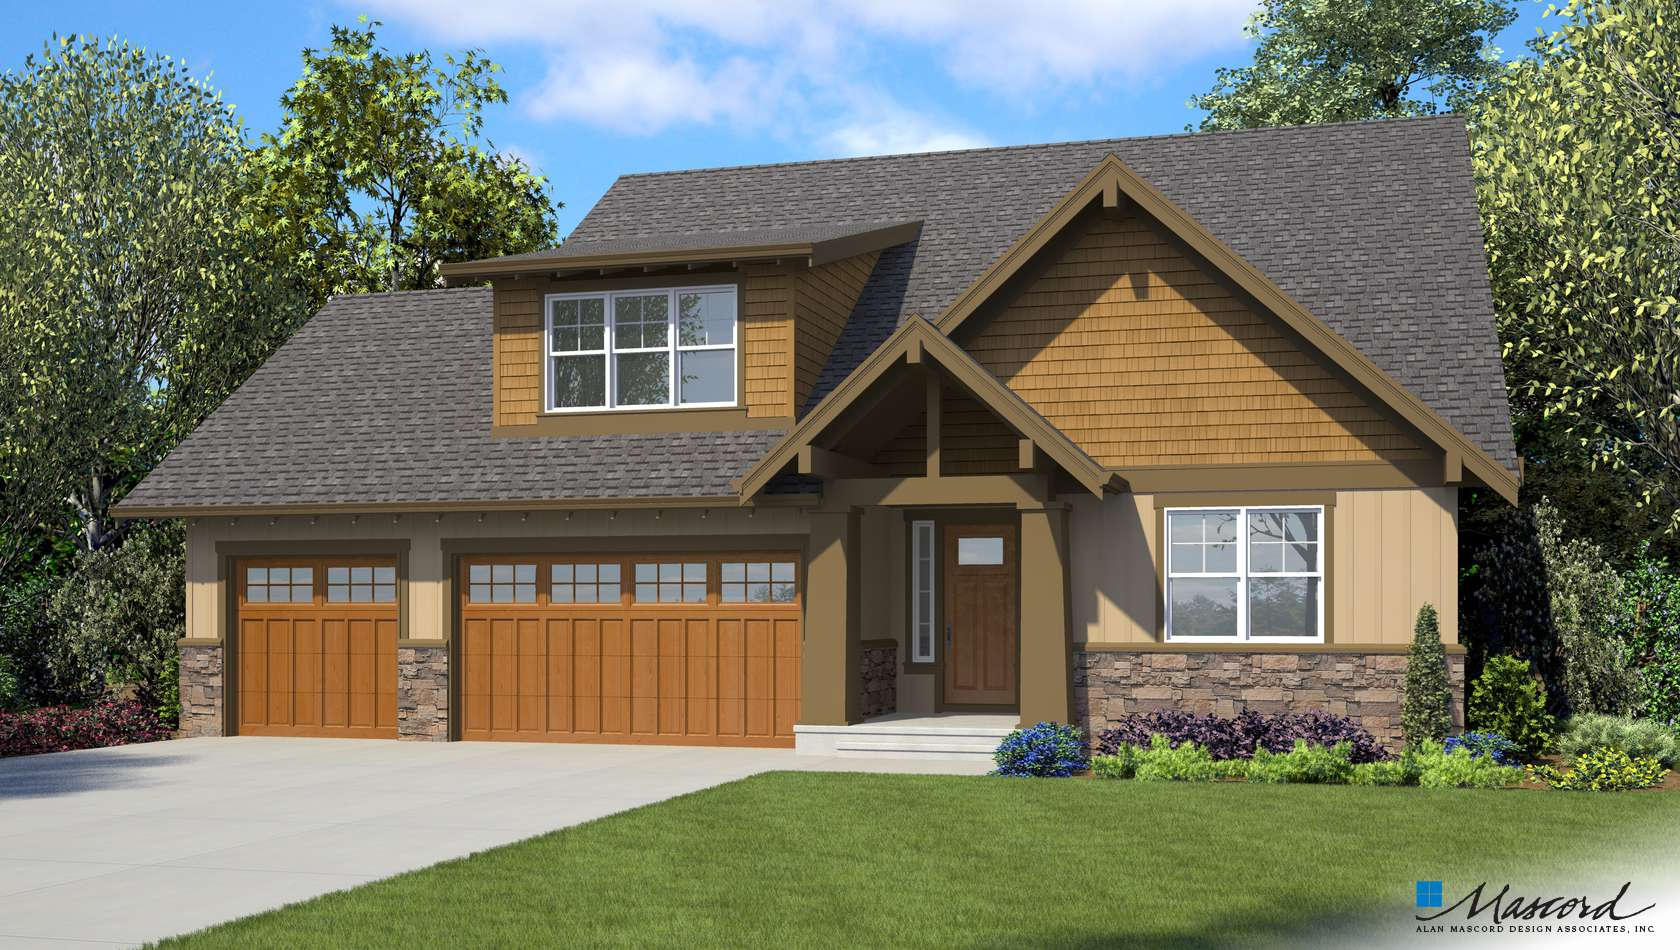 Main image for house plan 1168B: The Breve